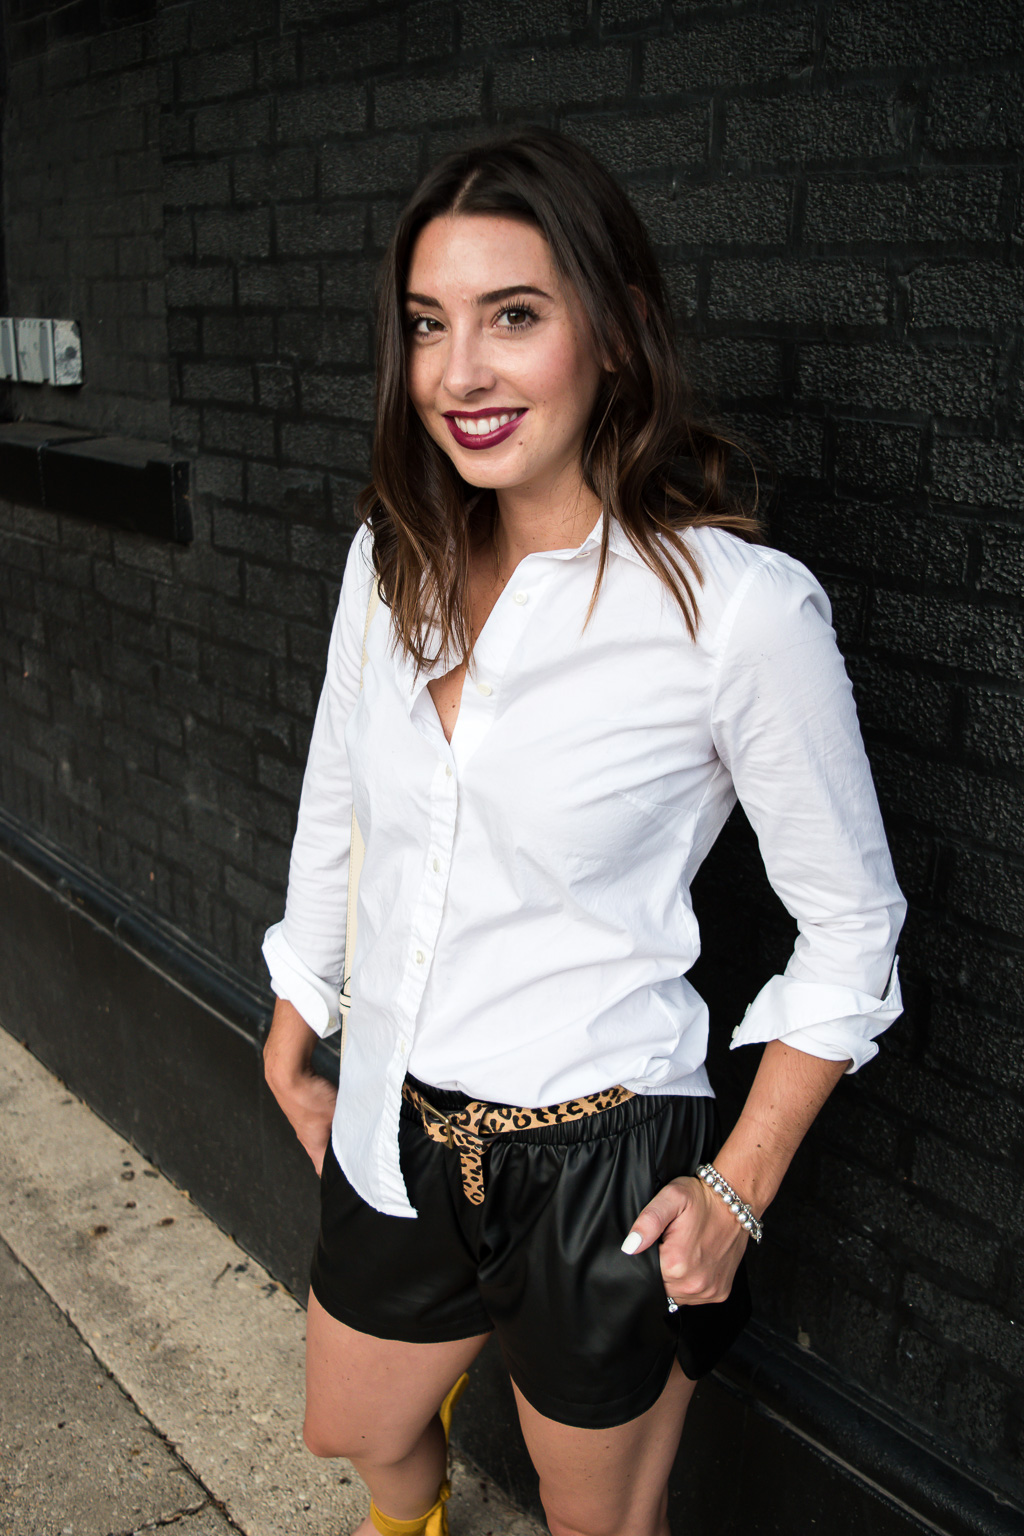 Transitioning to Fall with Faux Leather Shorts   J.Crew White Button Down Blouse, SheIn Faux Leather Shorts, Target Leapard Print Calf Hair Belt, Topshop Mustard Pointed Toe Lace Up Flats